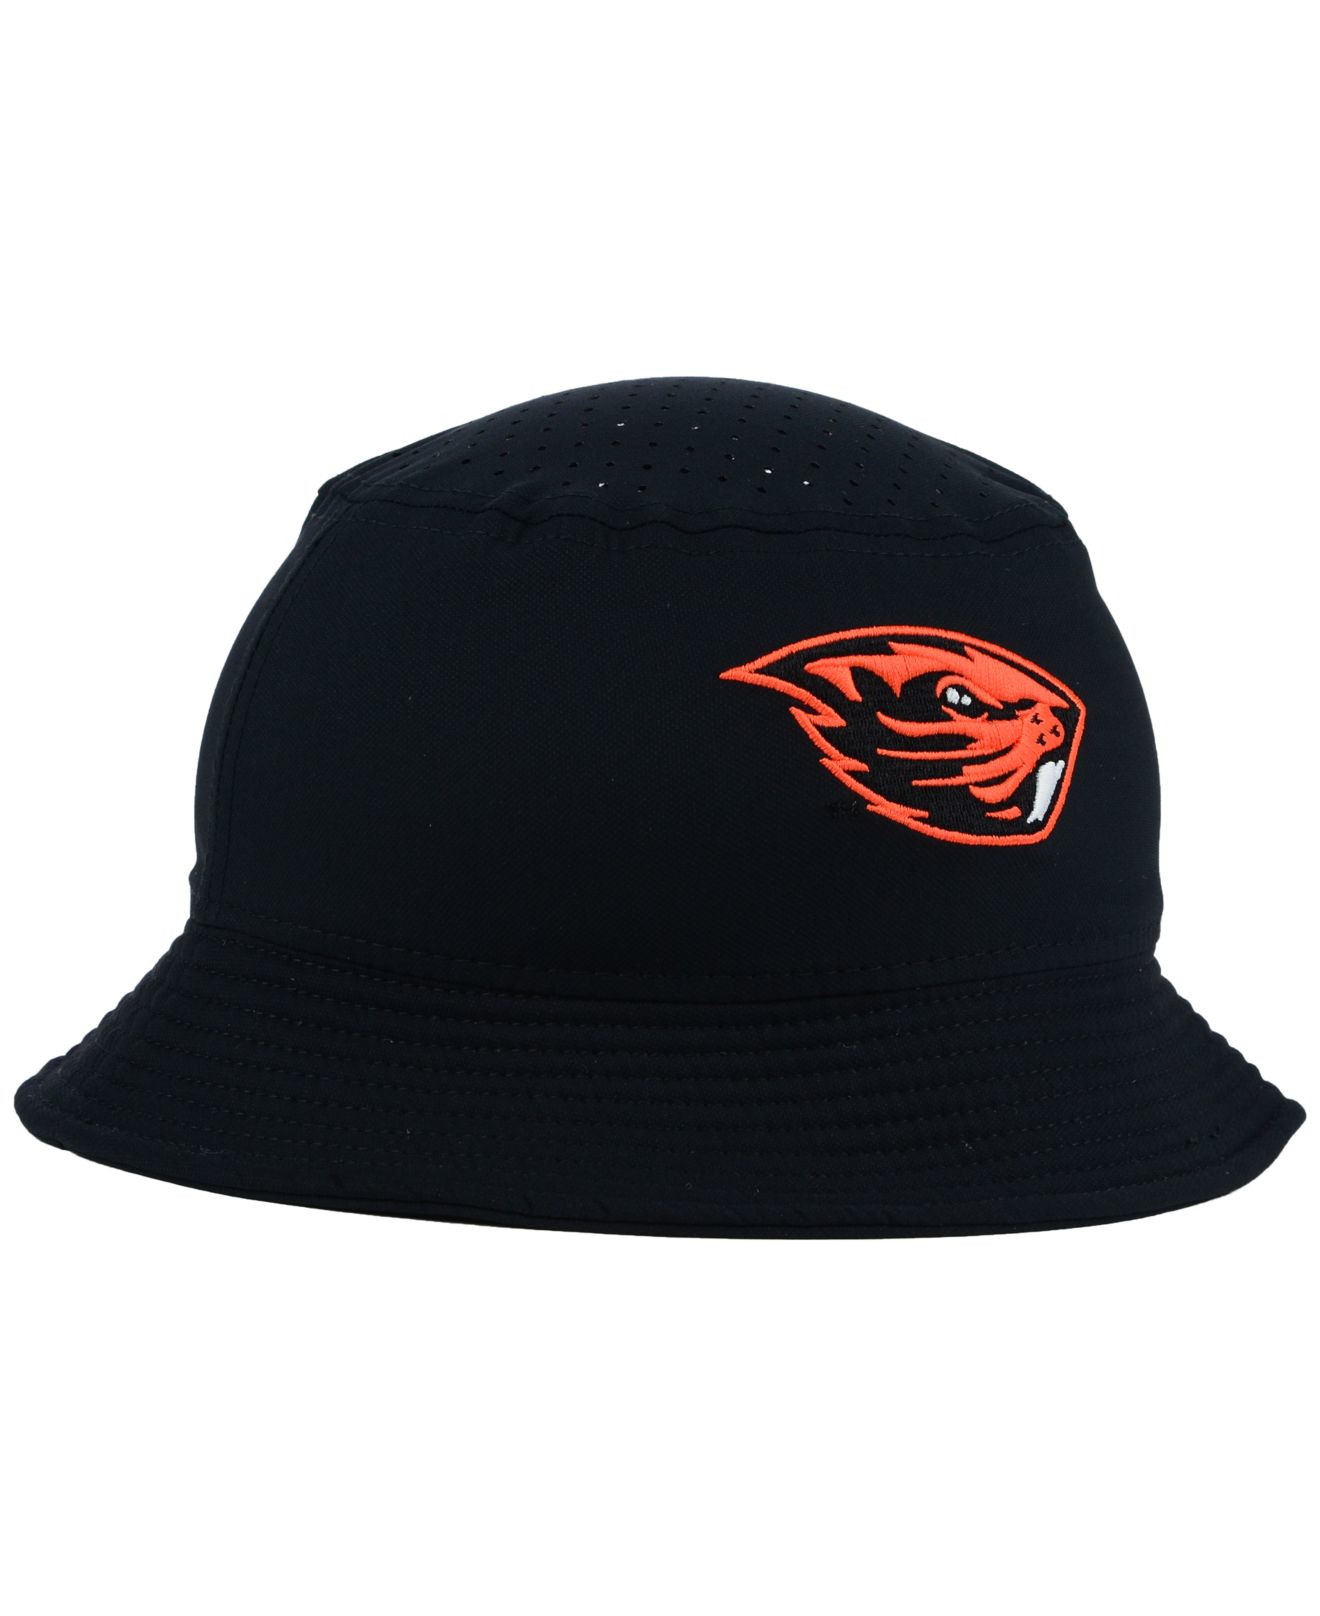 the latest 1a3ae 81036 ... discount code for lyst nike oregon state beavers vapor bucket hat in  black for men bdd34